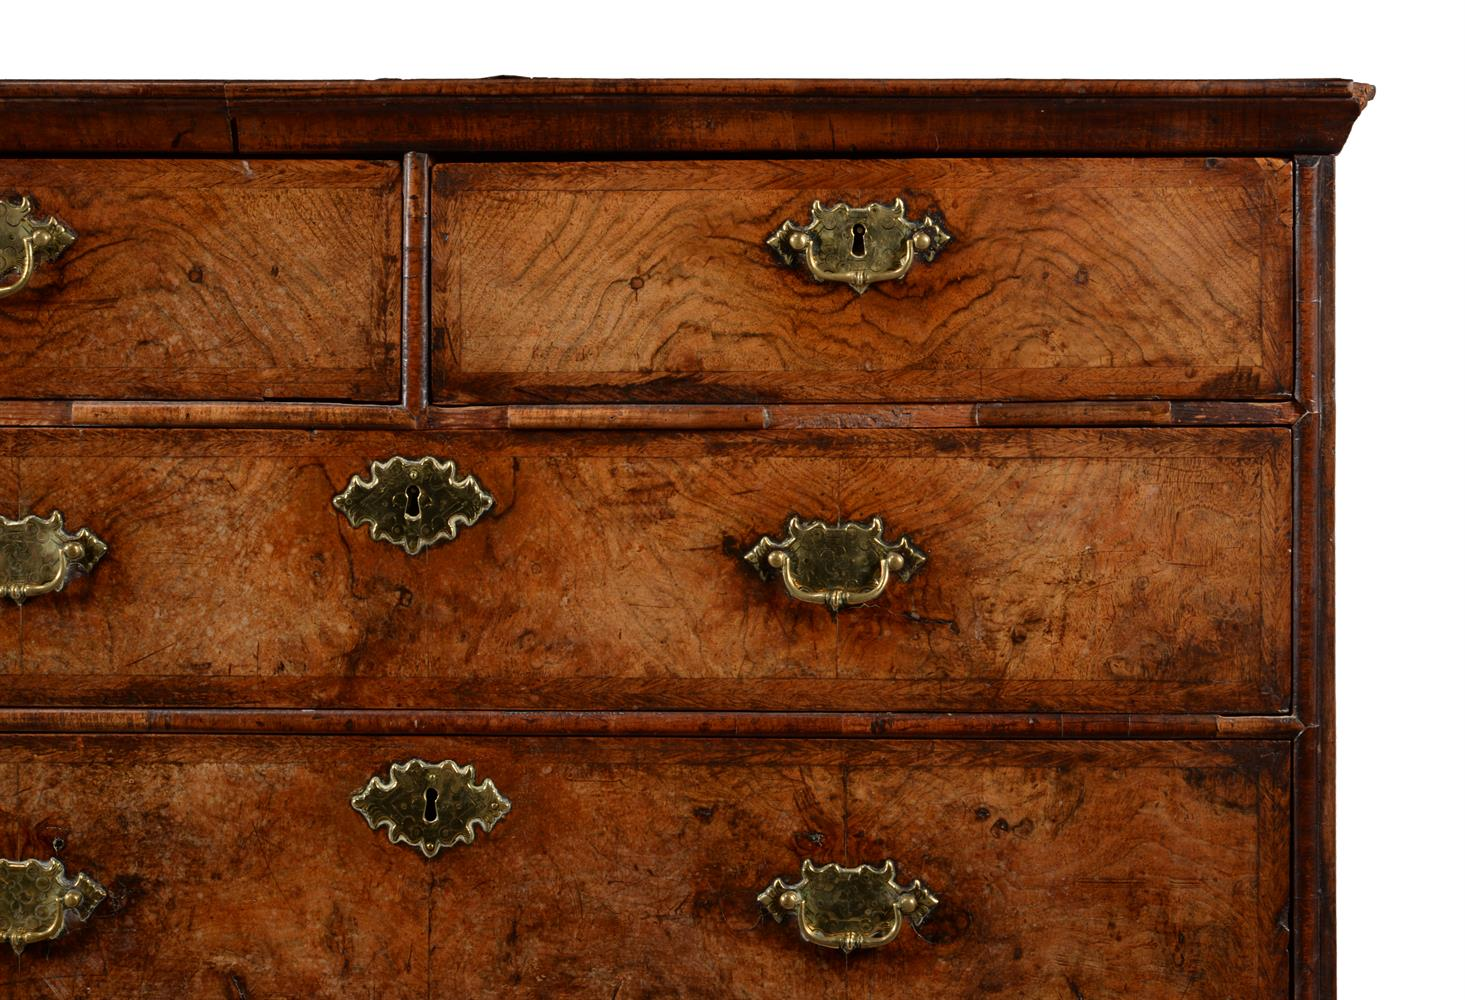 A GEORGE II WALNUT AND FEATHER BANDED CHEST OF DRAWERS, CIRCA 1740 - Image 2 of 3